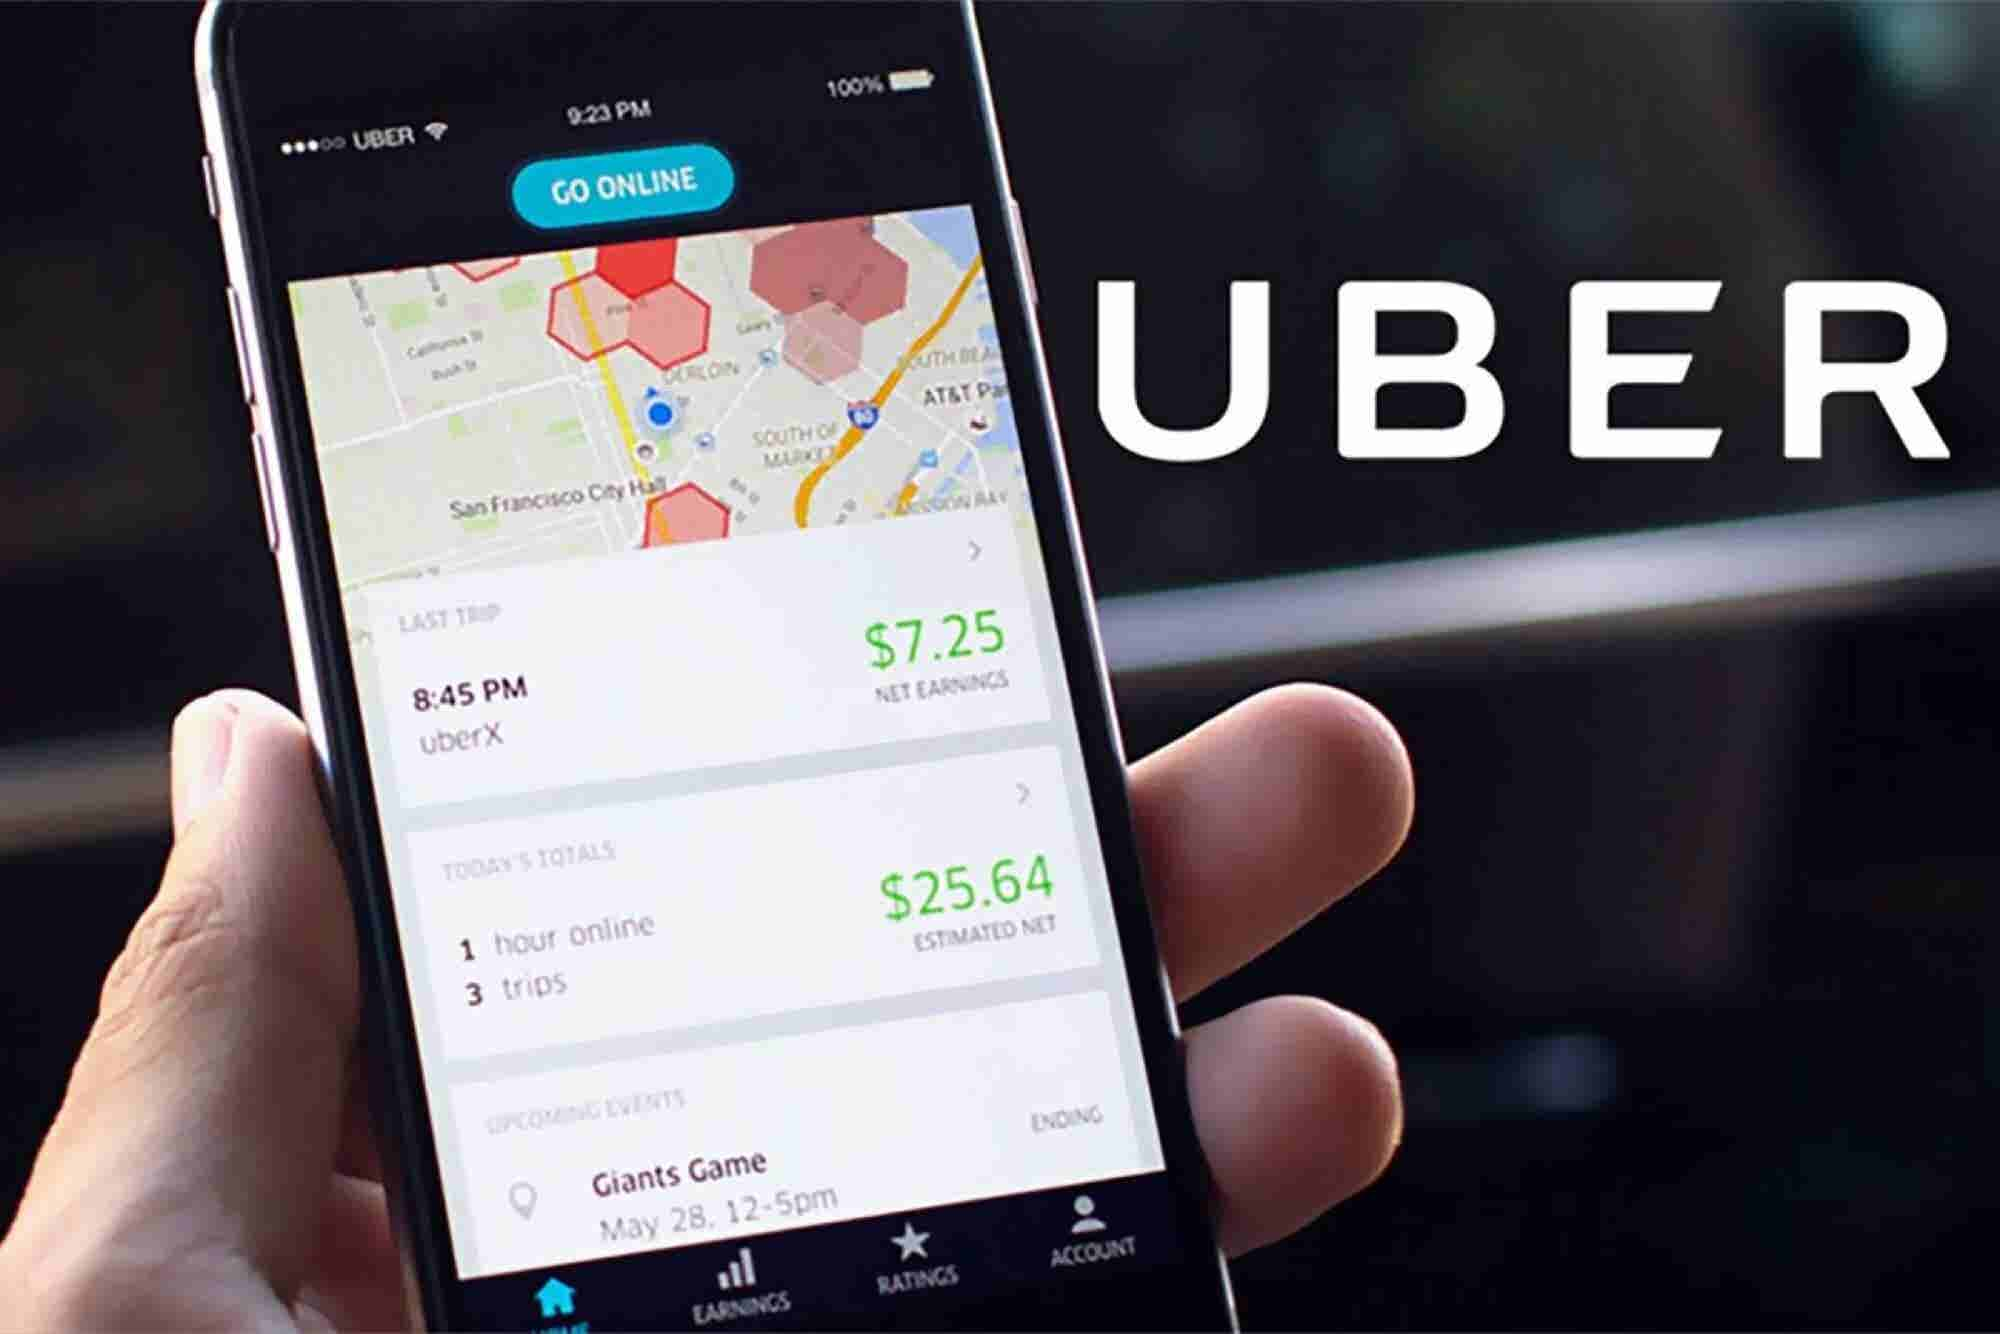 Uber to Make Surge Pricing Less Obvious